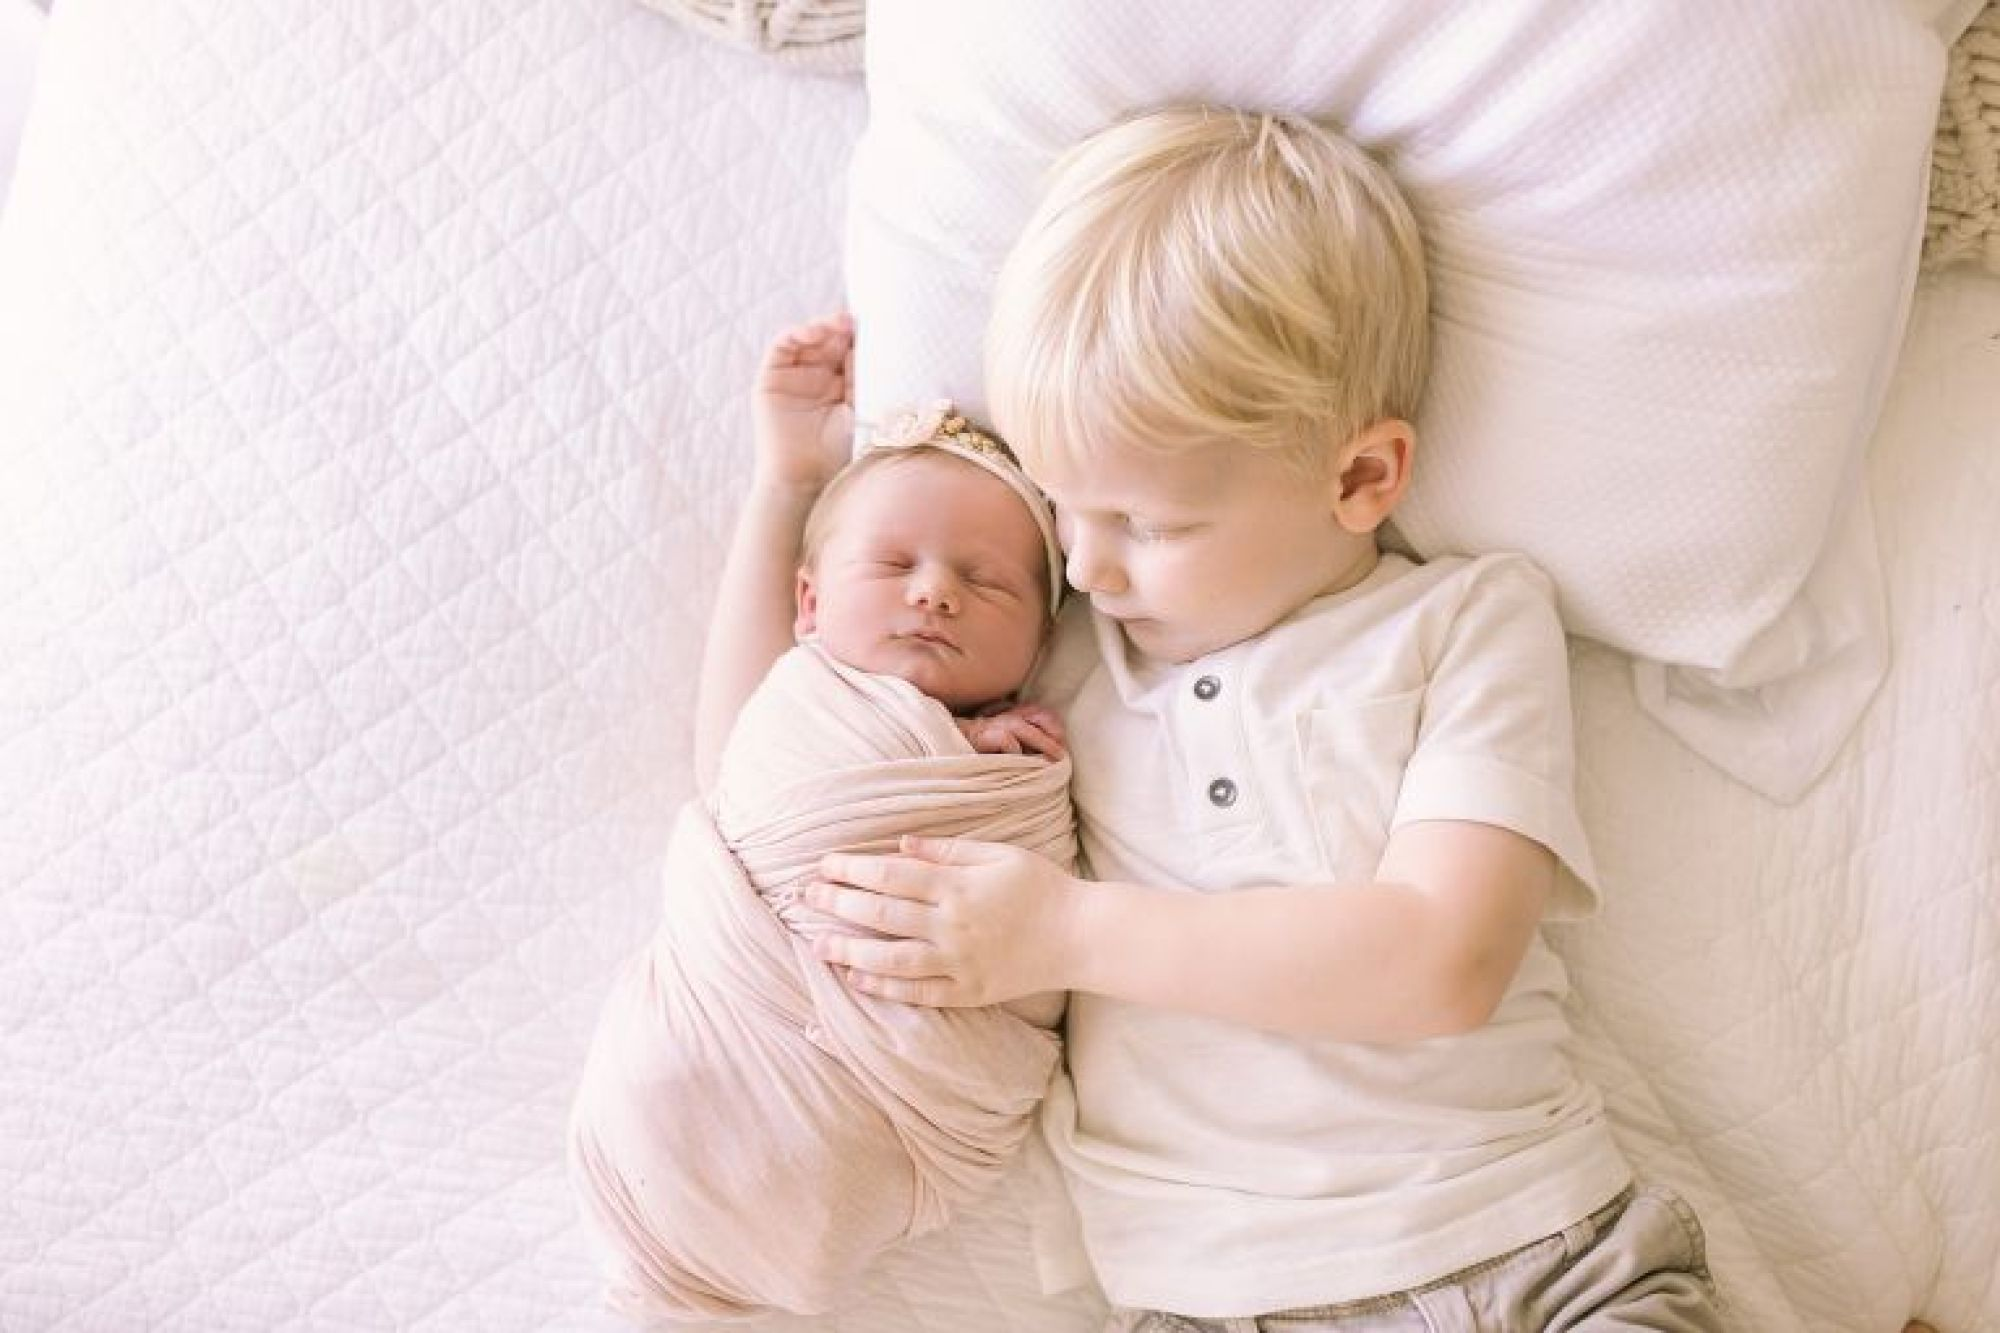 Big brother and baby sister during newborn photoshoot with Courtney Griffin Photography.